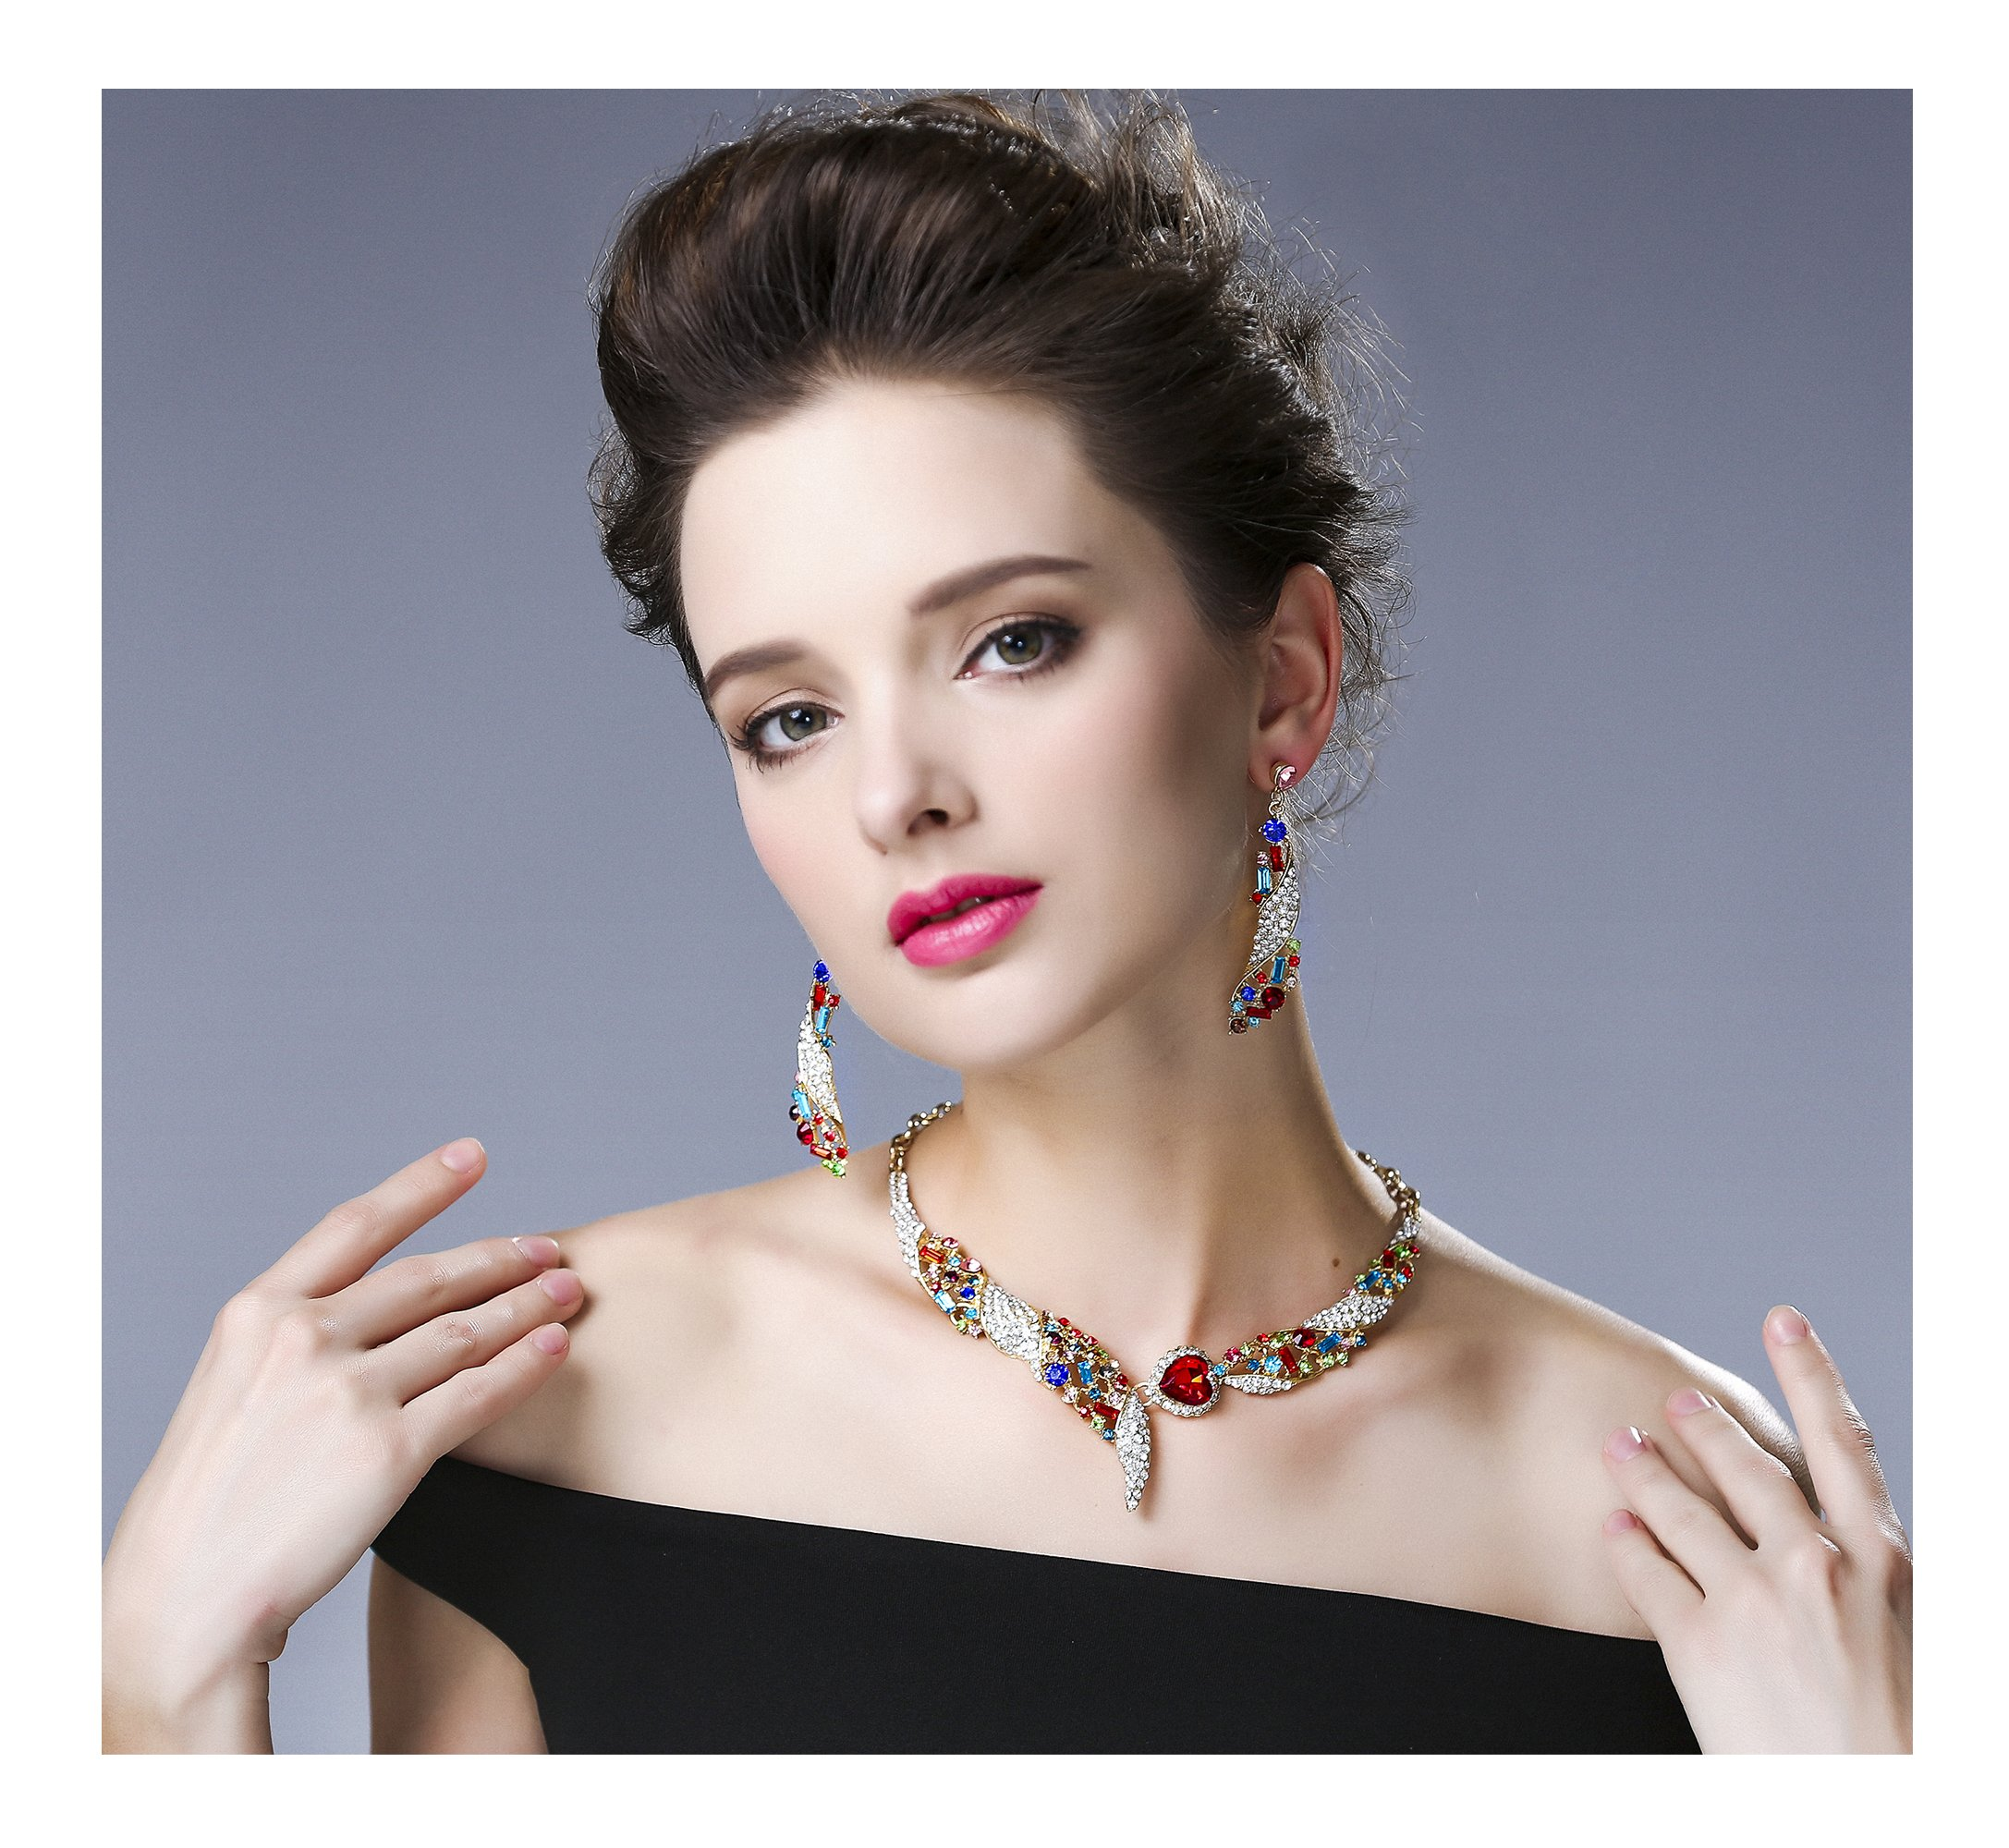 Hamer Crystal Choker Statement Necklace and Earrings Sets Pendant Charm Custom Jewelry Wedding